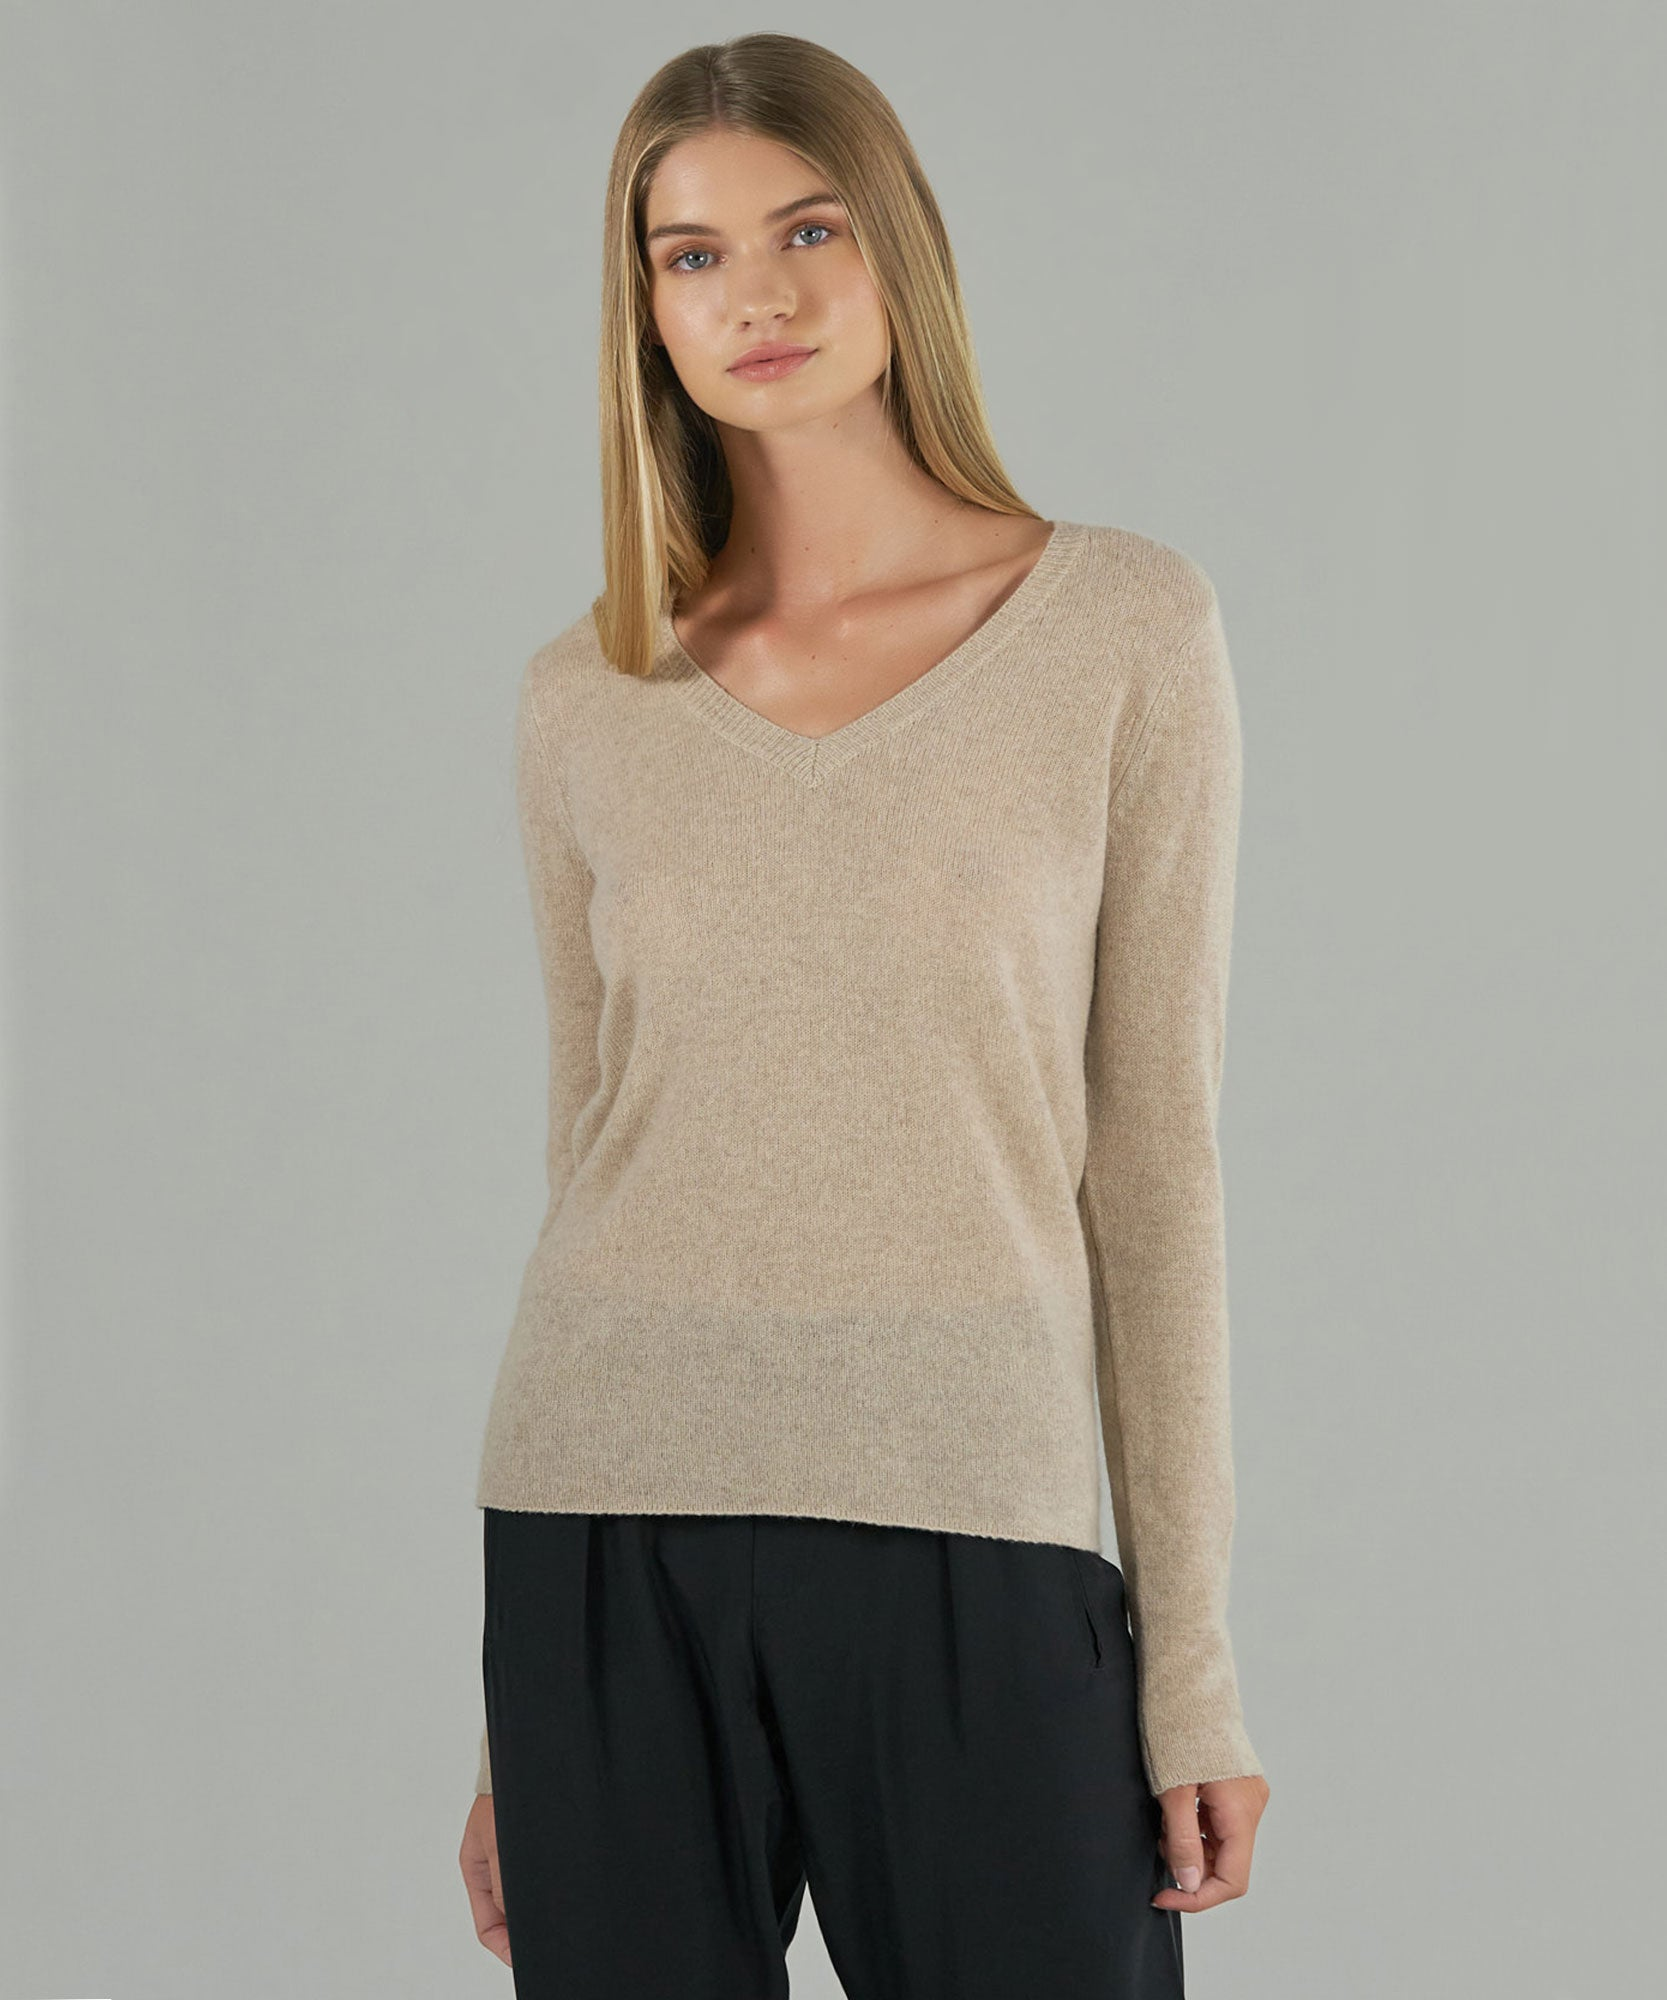 Oat Cashmere V-Neck Sweater - Women's Sweater by ATM Anthony Thomas Melillo